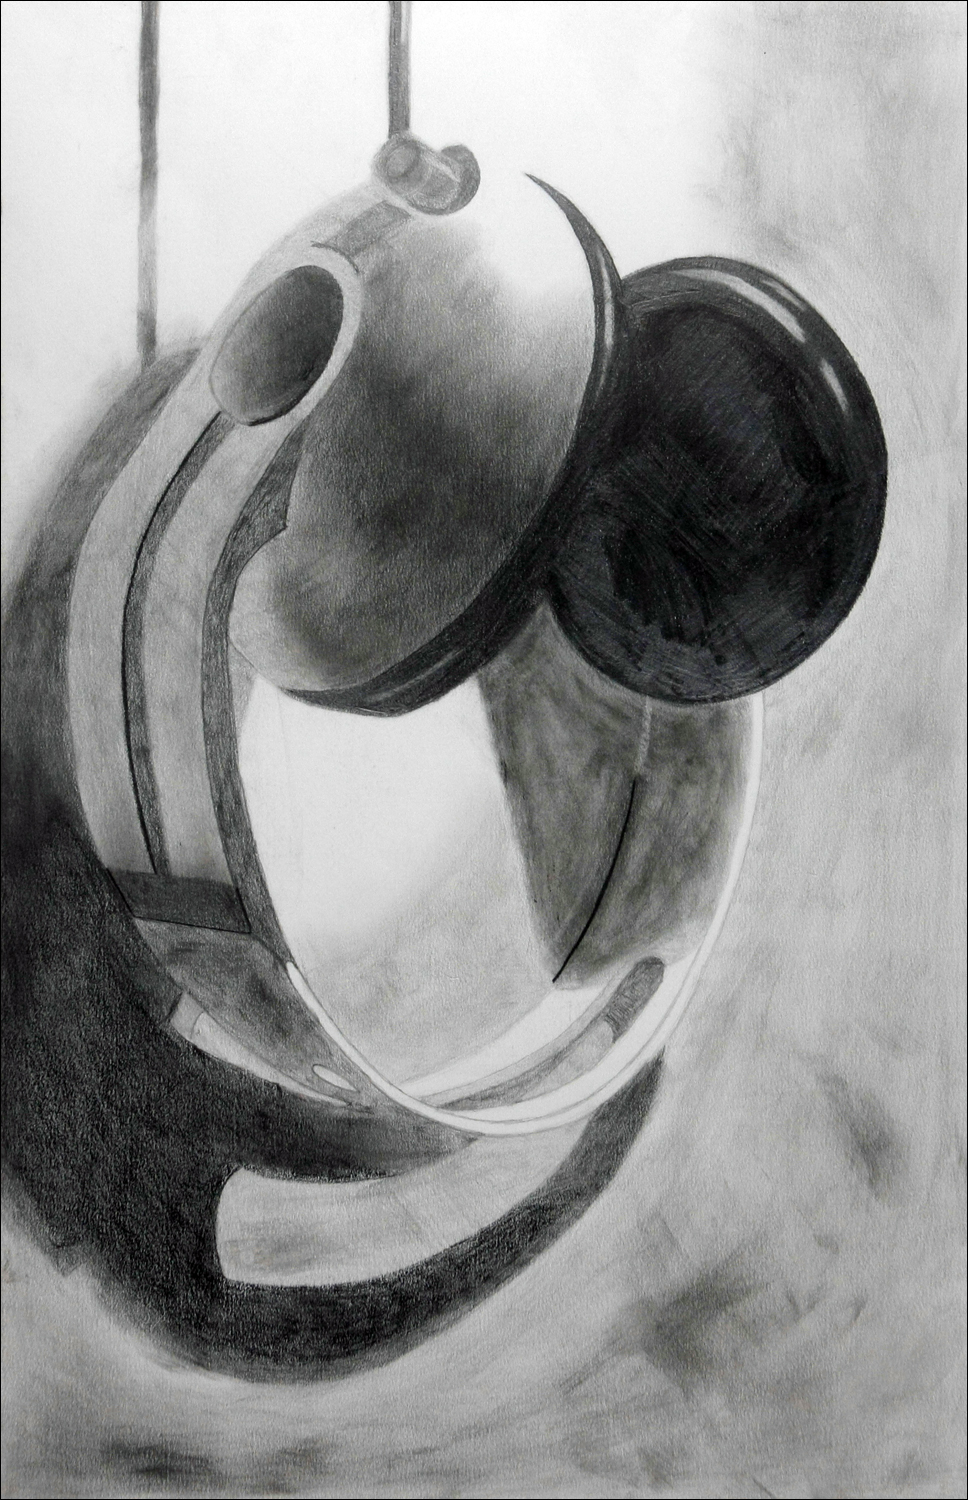 Headphones (2010)